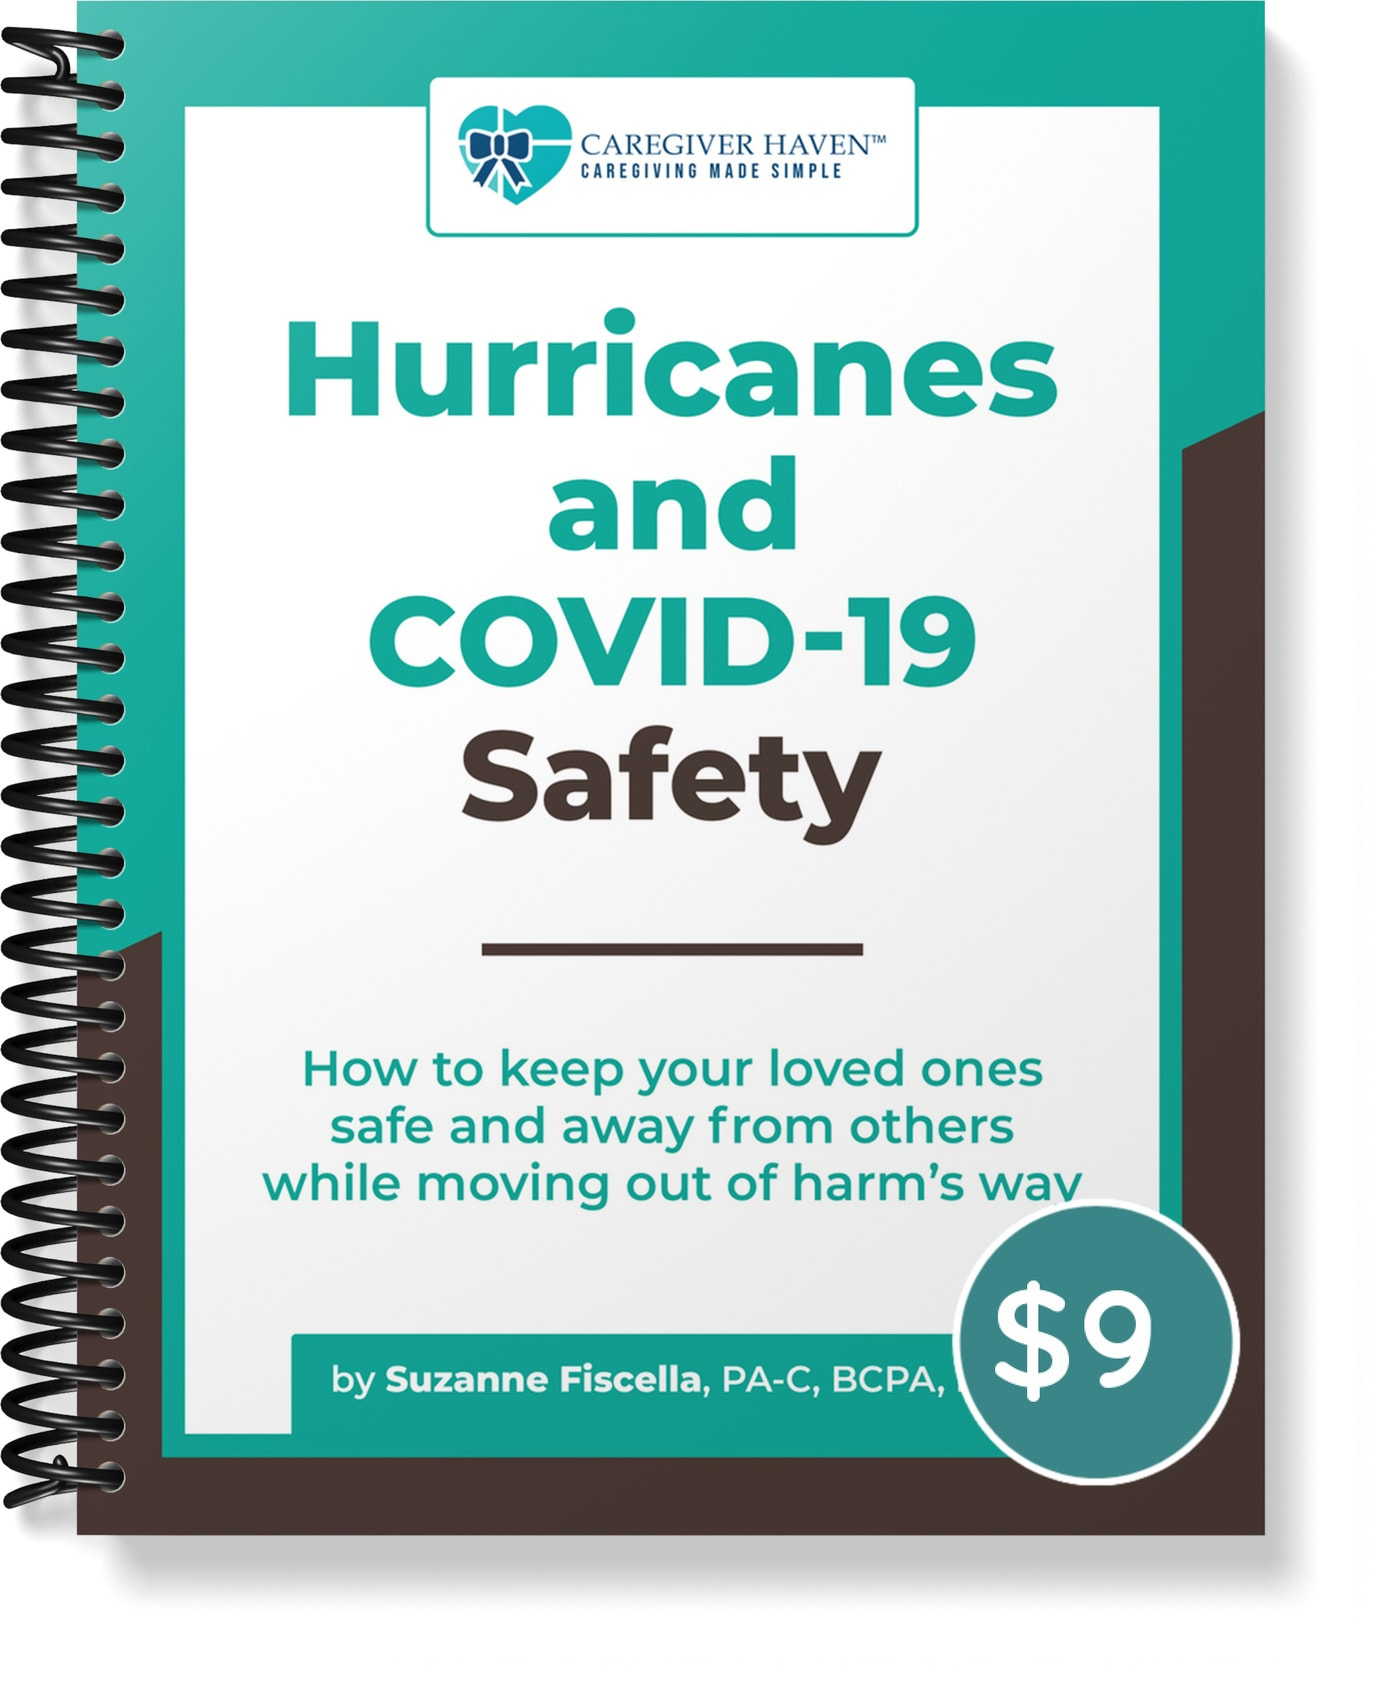 LM 2 Hurricanes & Covid-19 Safety $9